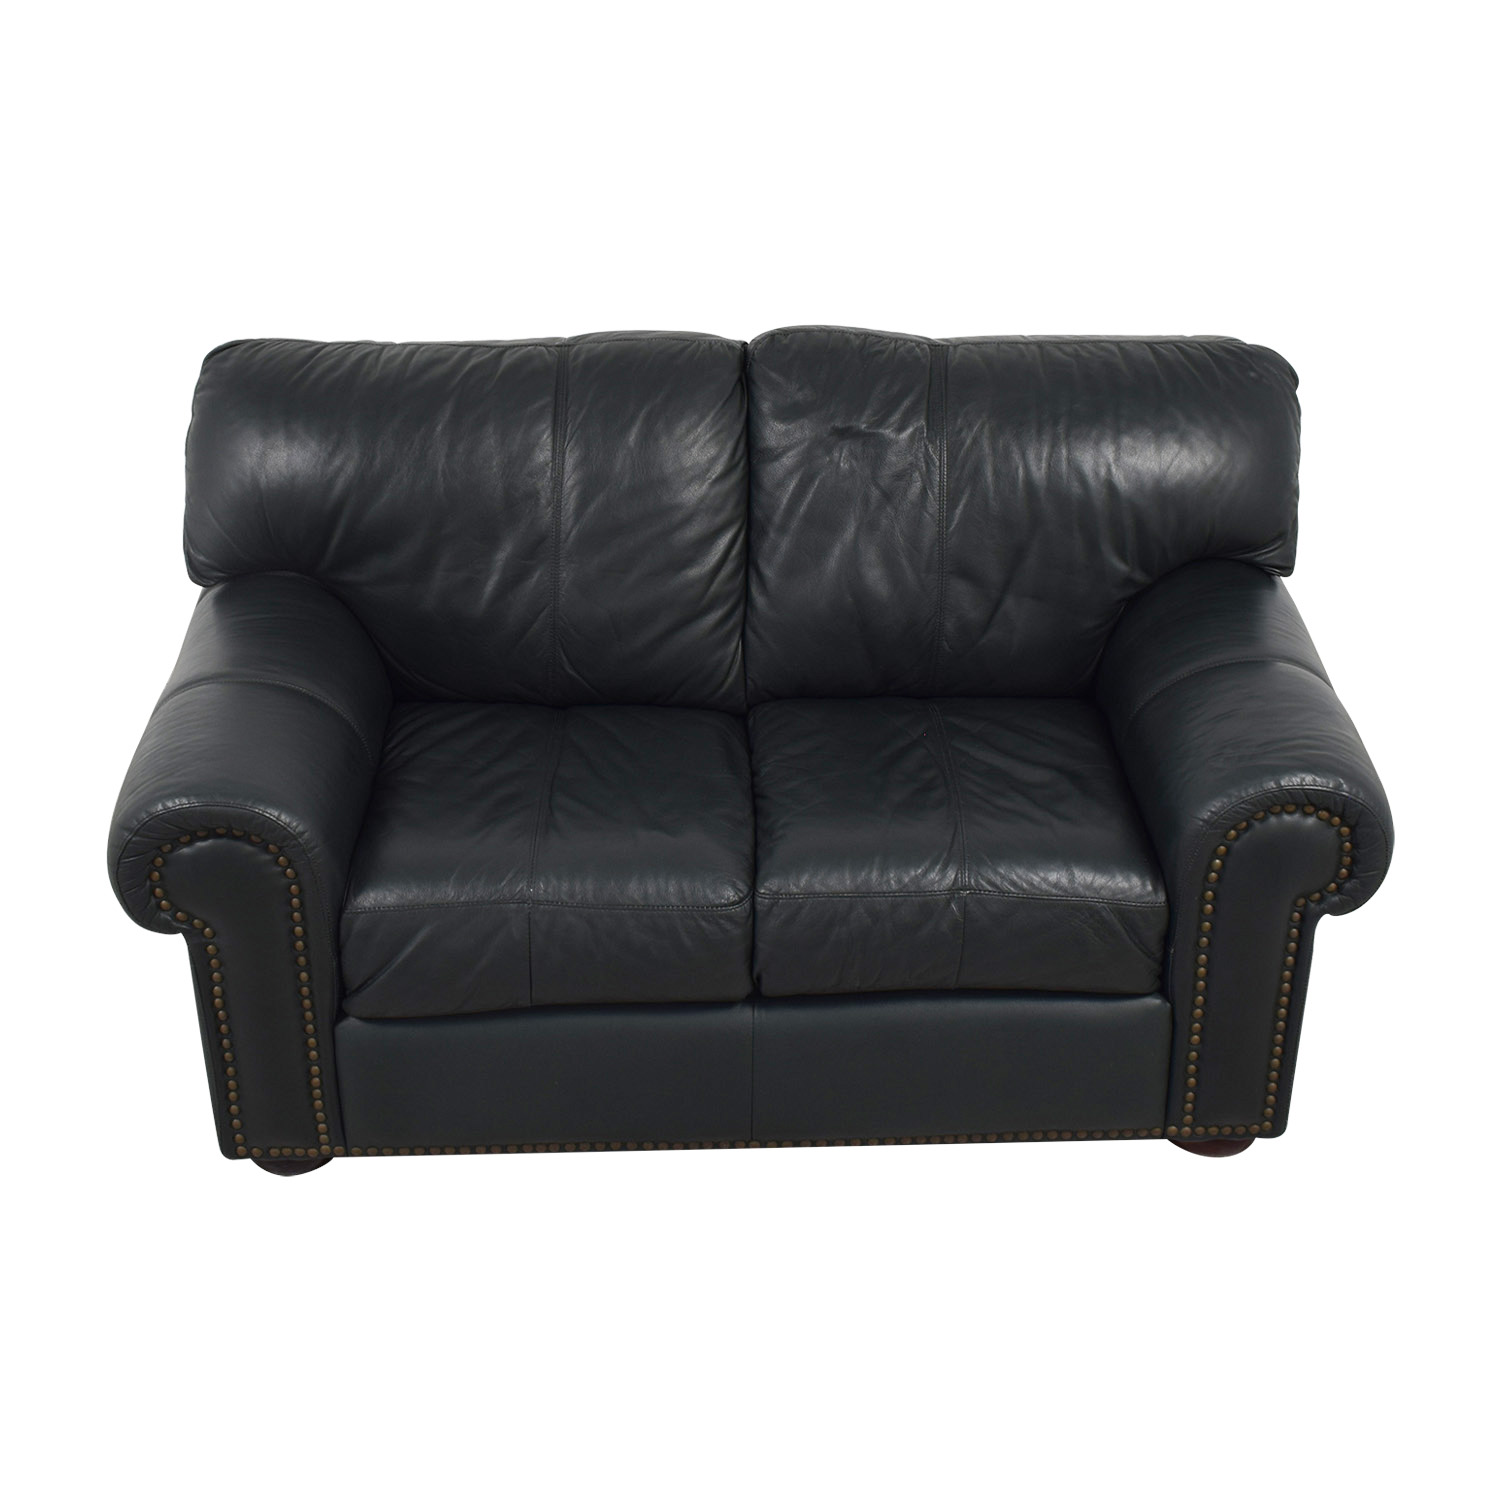 Leather Mart Leather Mart Green Leather Nailhead Loveseat second hand